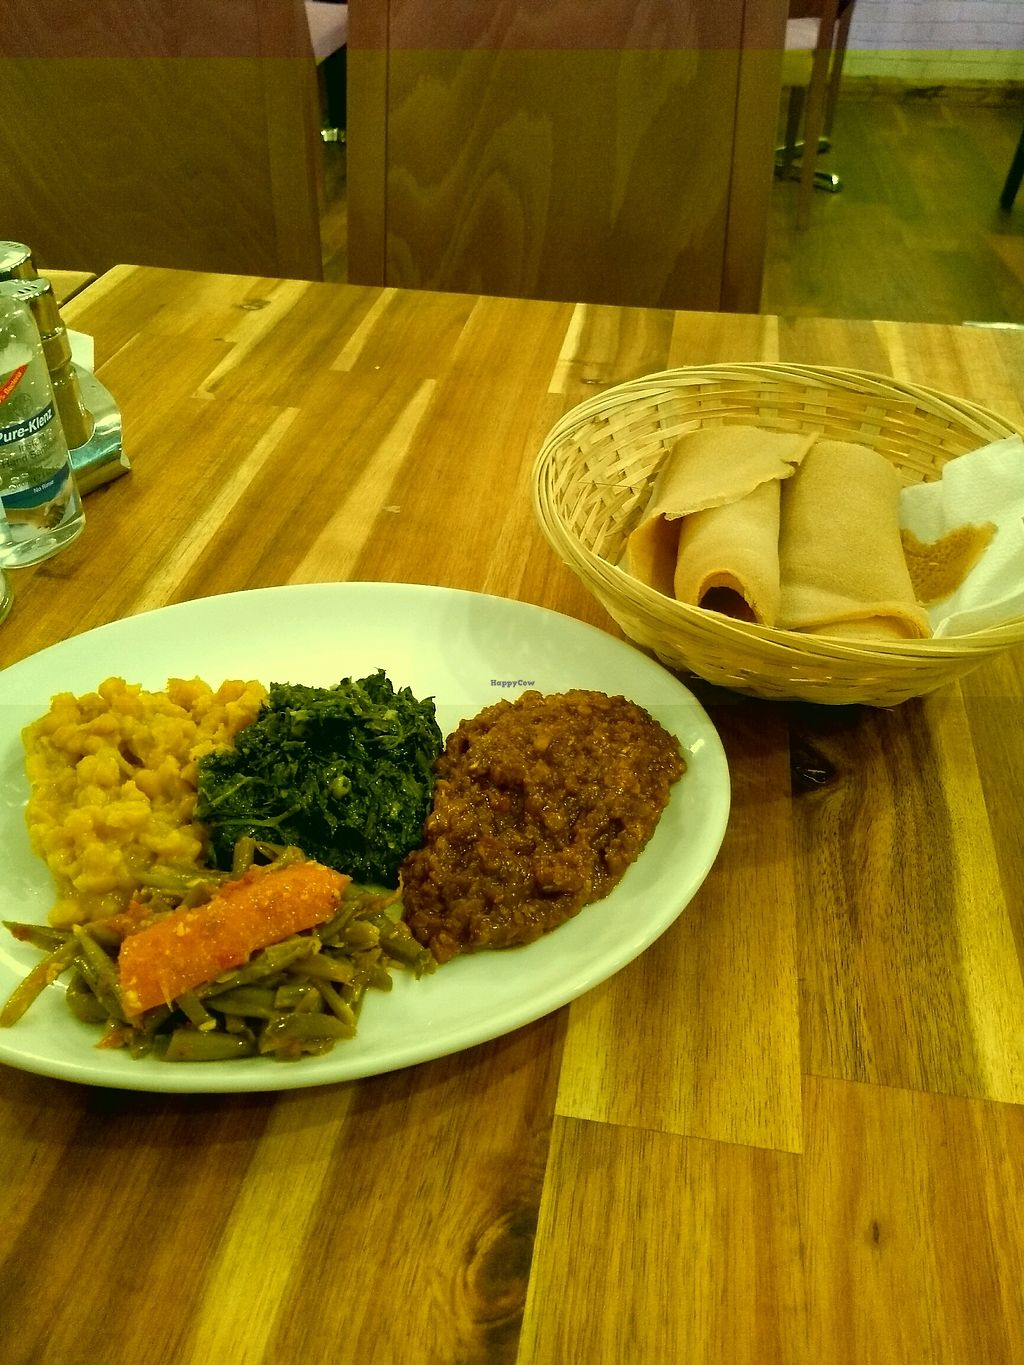 """Photo of Engocha  by <a href=""""/members/profile/sparklelilz"""">sparklelilz</a> <br/>Selection of curries and delicious flatbread <br/> January 7, 2018  - <a href='/contact/abuse/image/108652/344095'>Report</a>"""